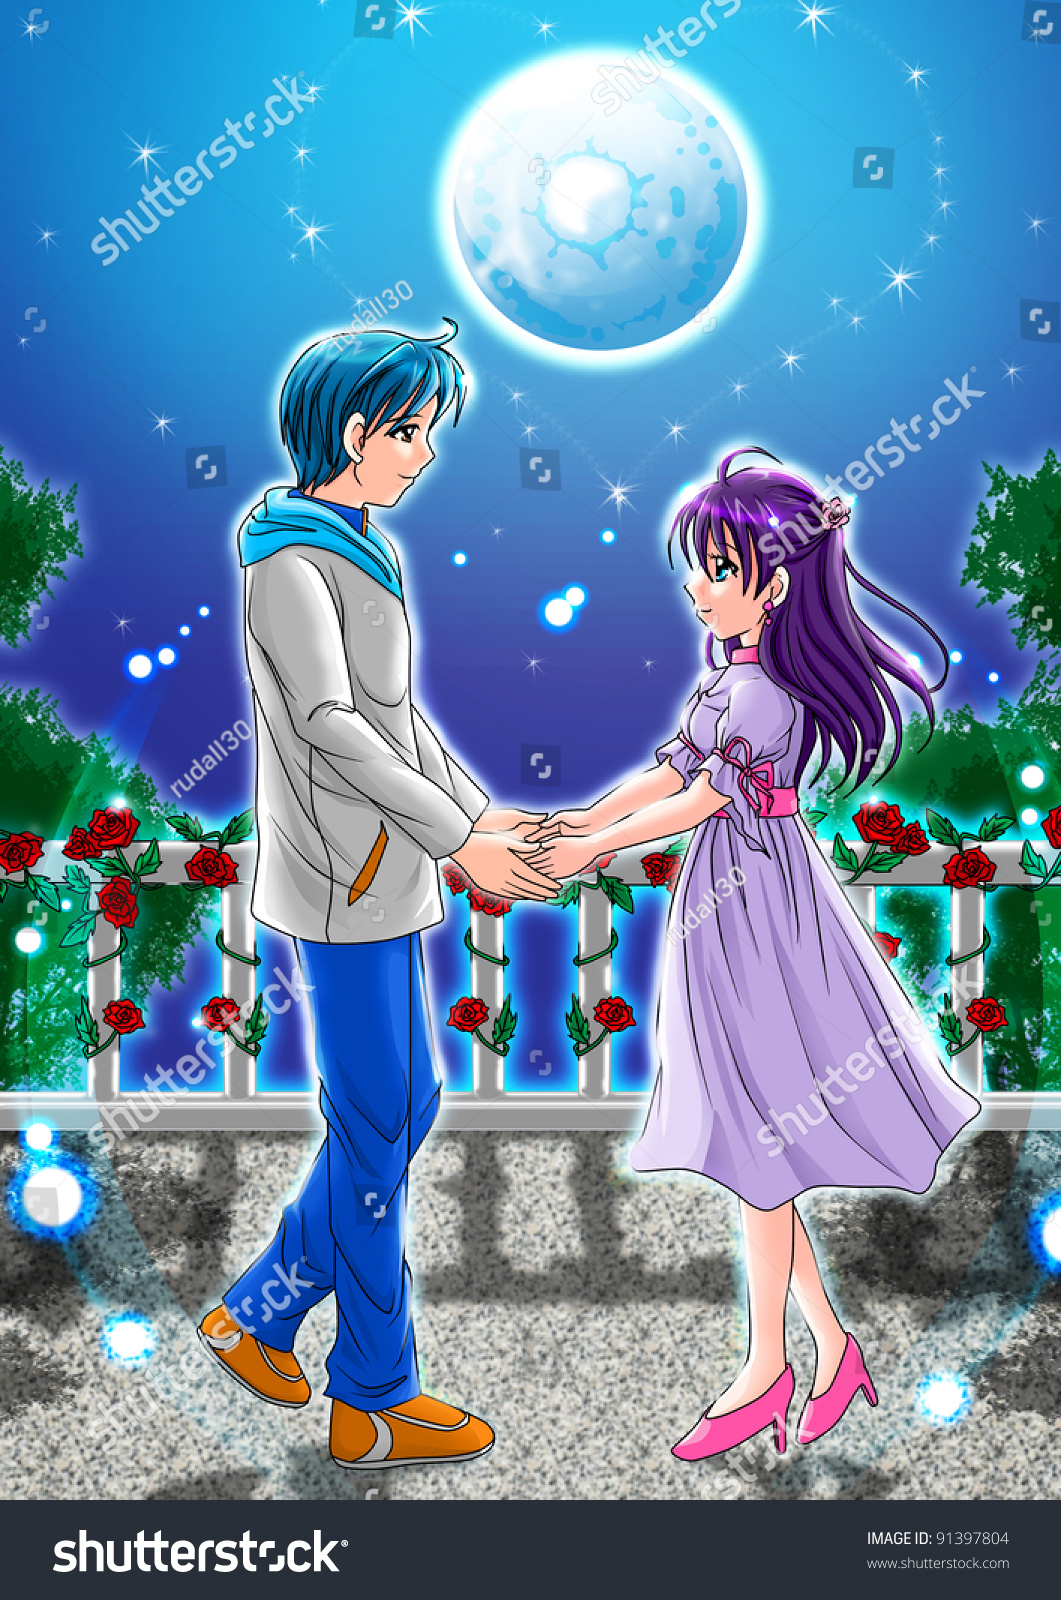 Cartoon illustration of a couple holding hands under the moonlight